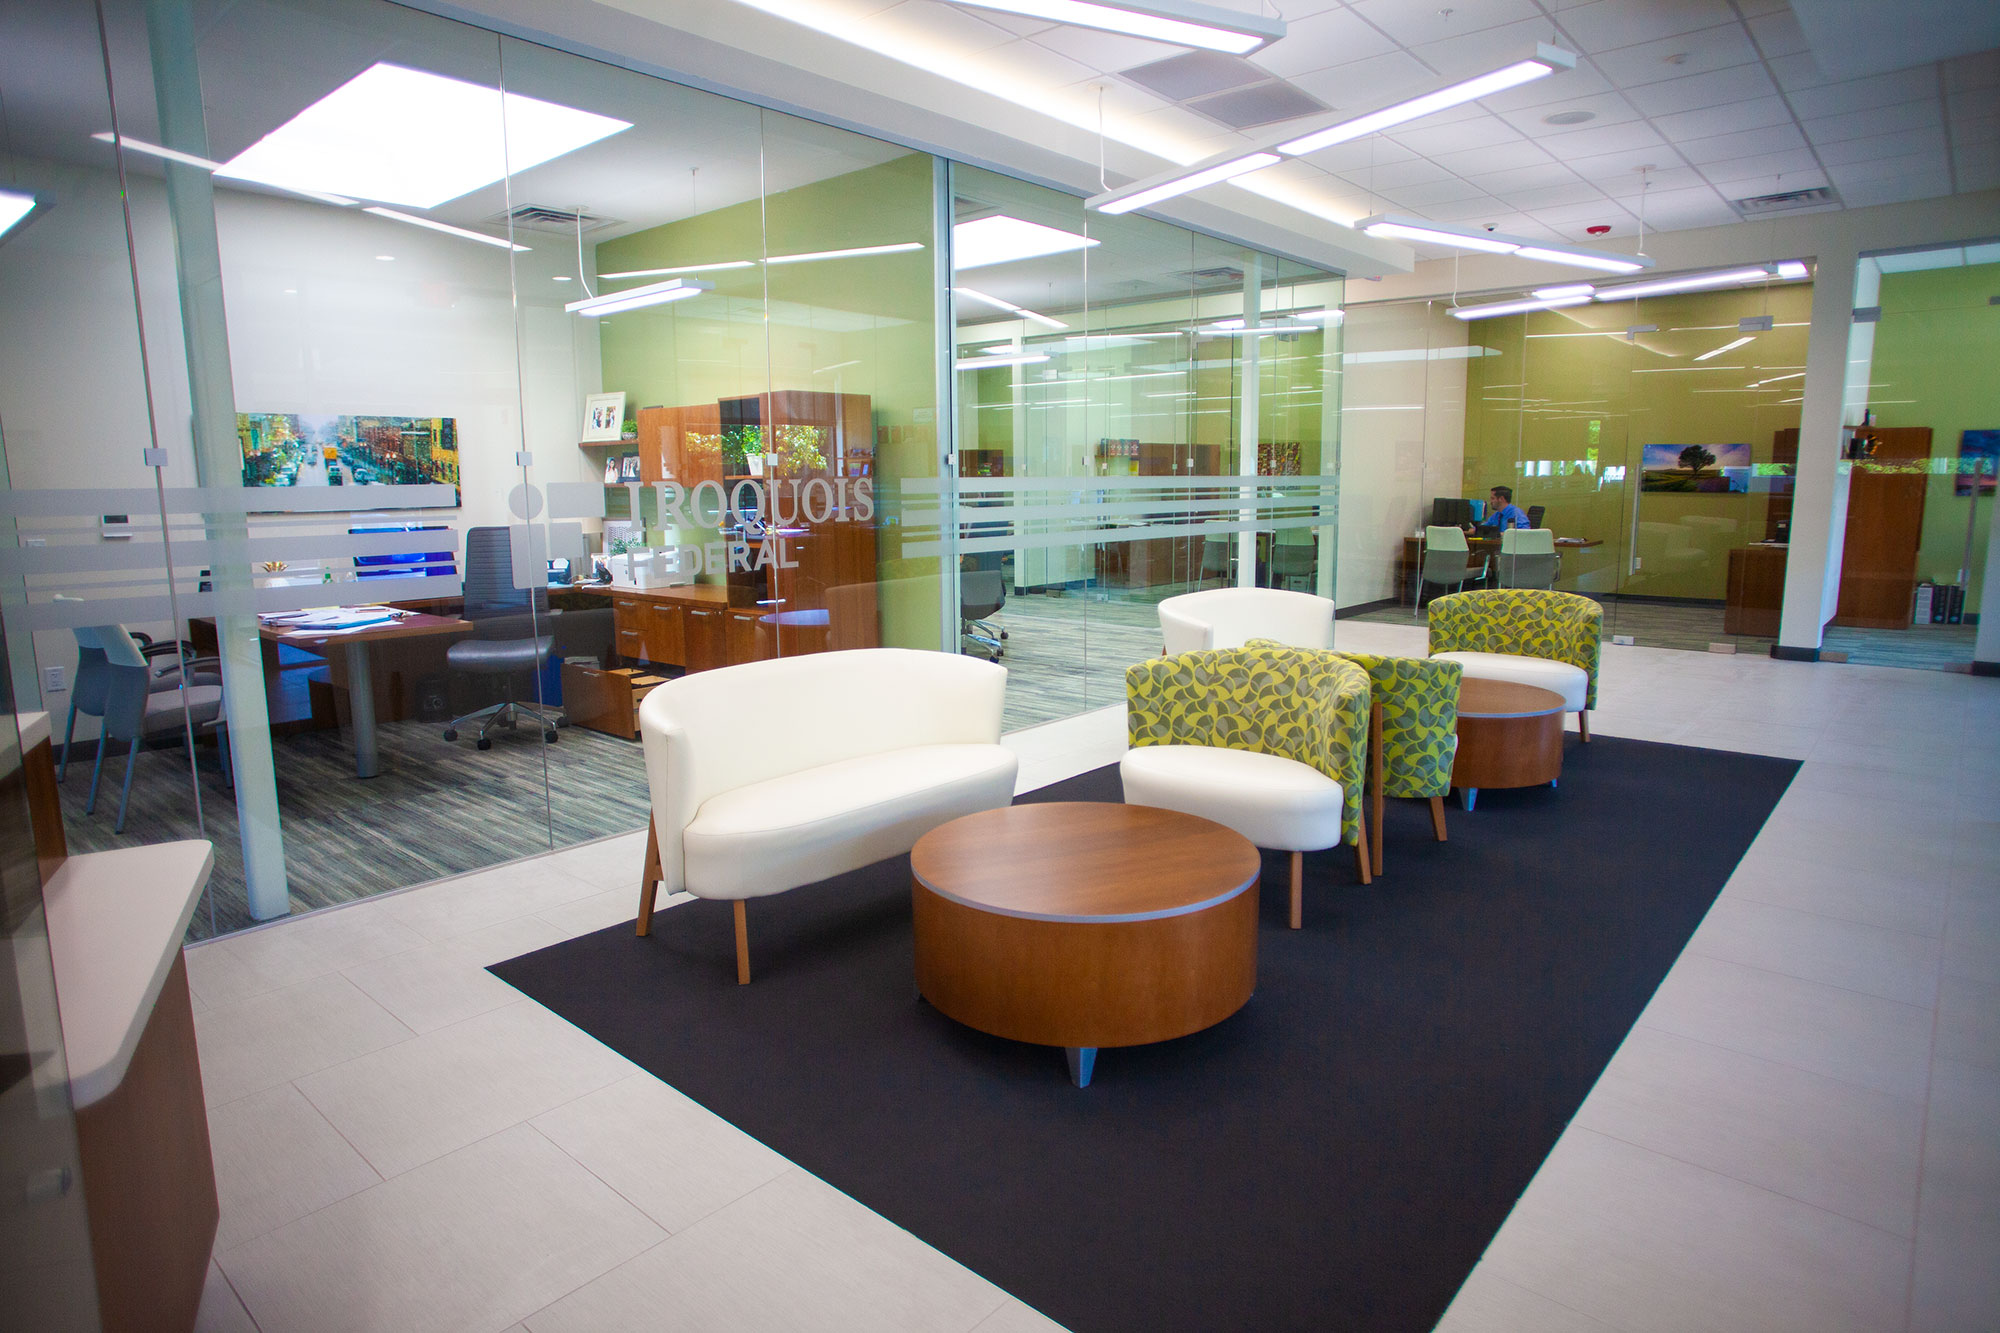 Iroquois Federal Bank Interior